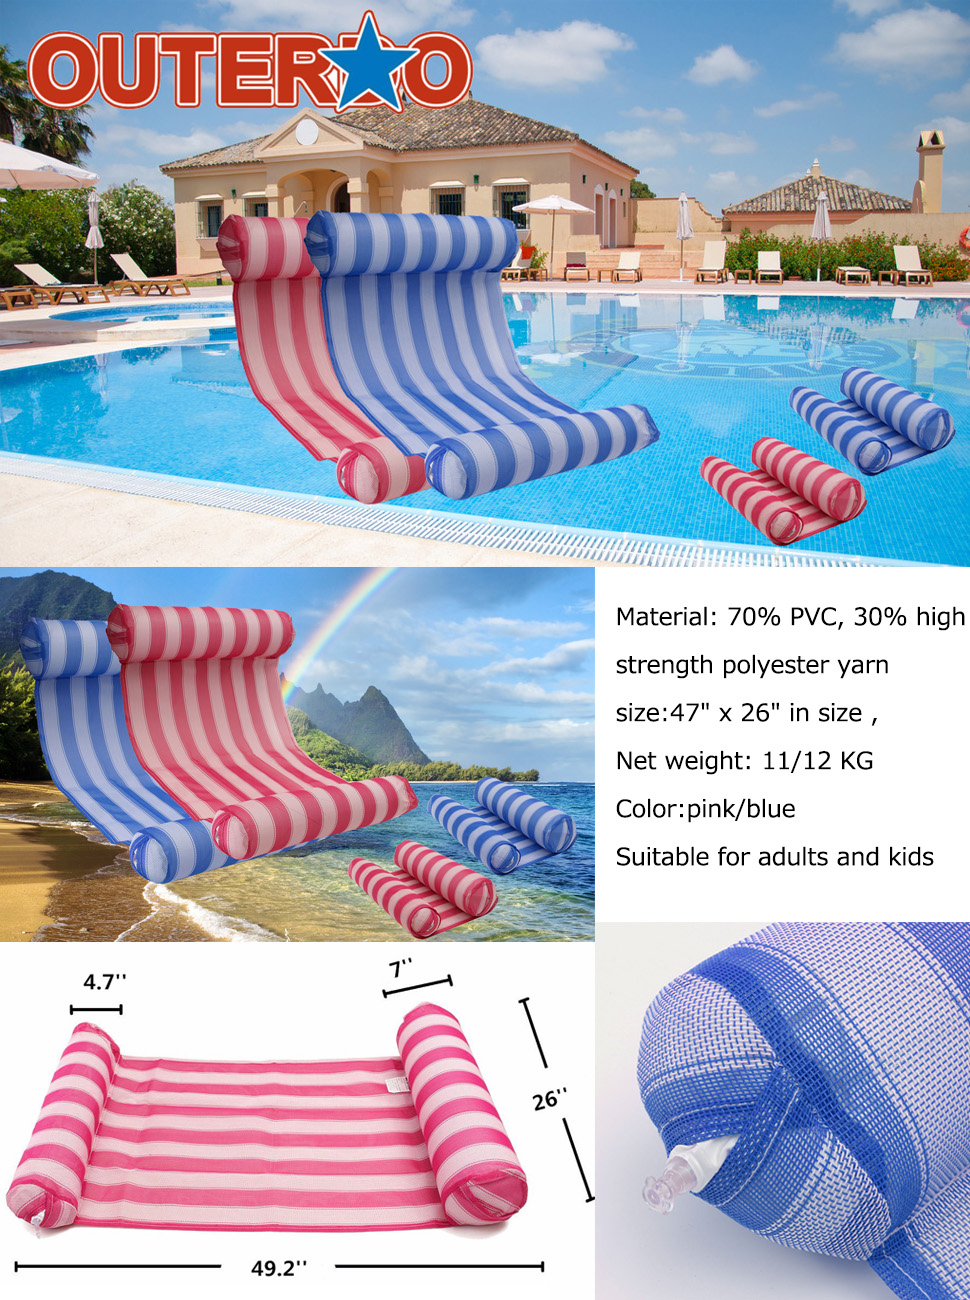 chair water inflatable air hammock mattress rings sports swimming floats pizza lounger item sleeping pool toy from in bed float